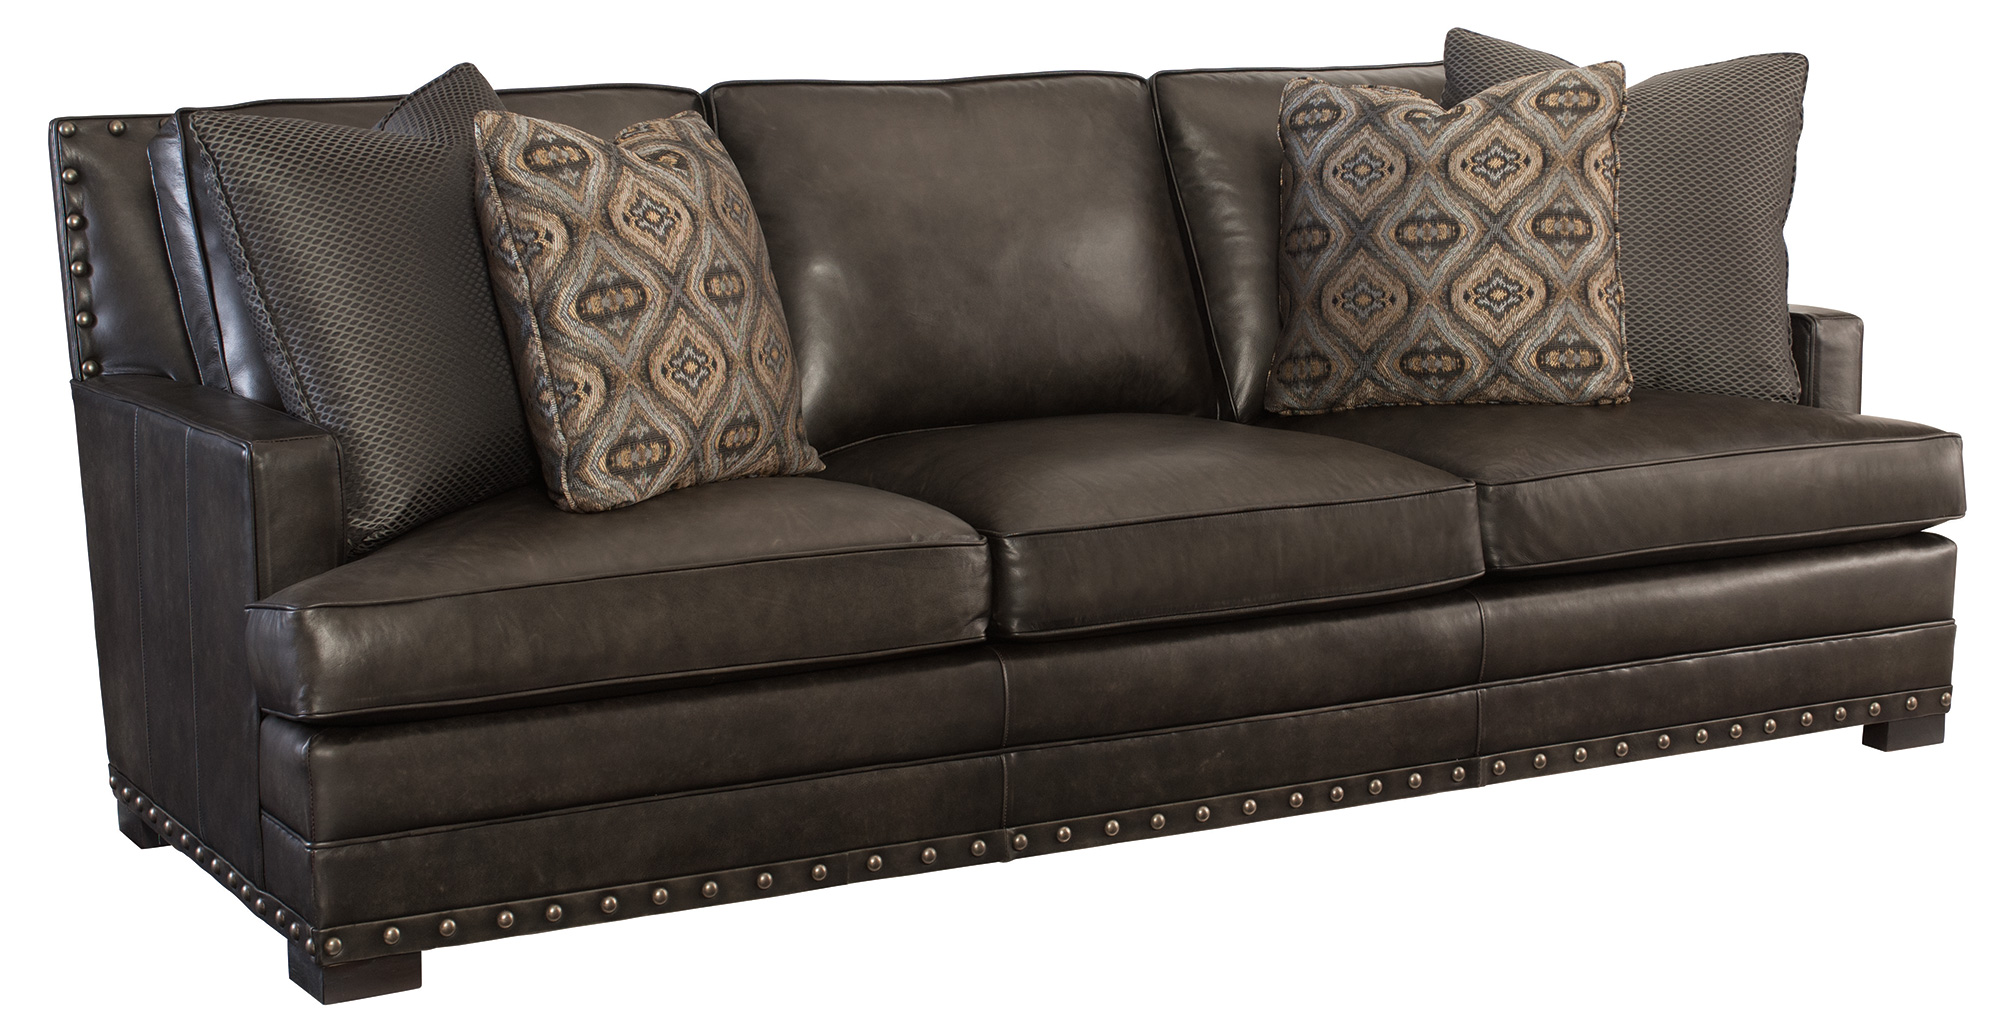 Bernhardt Leather Chair Bernhardt Leather Sofa Reviews Bernhardt Leather Sofa